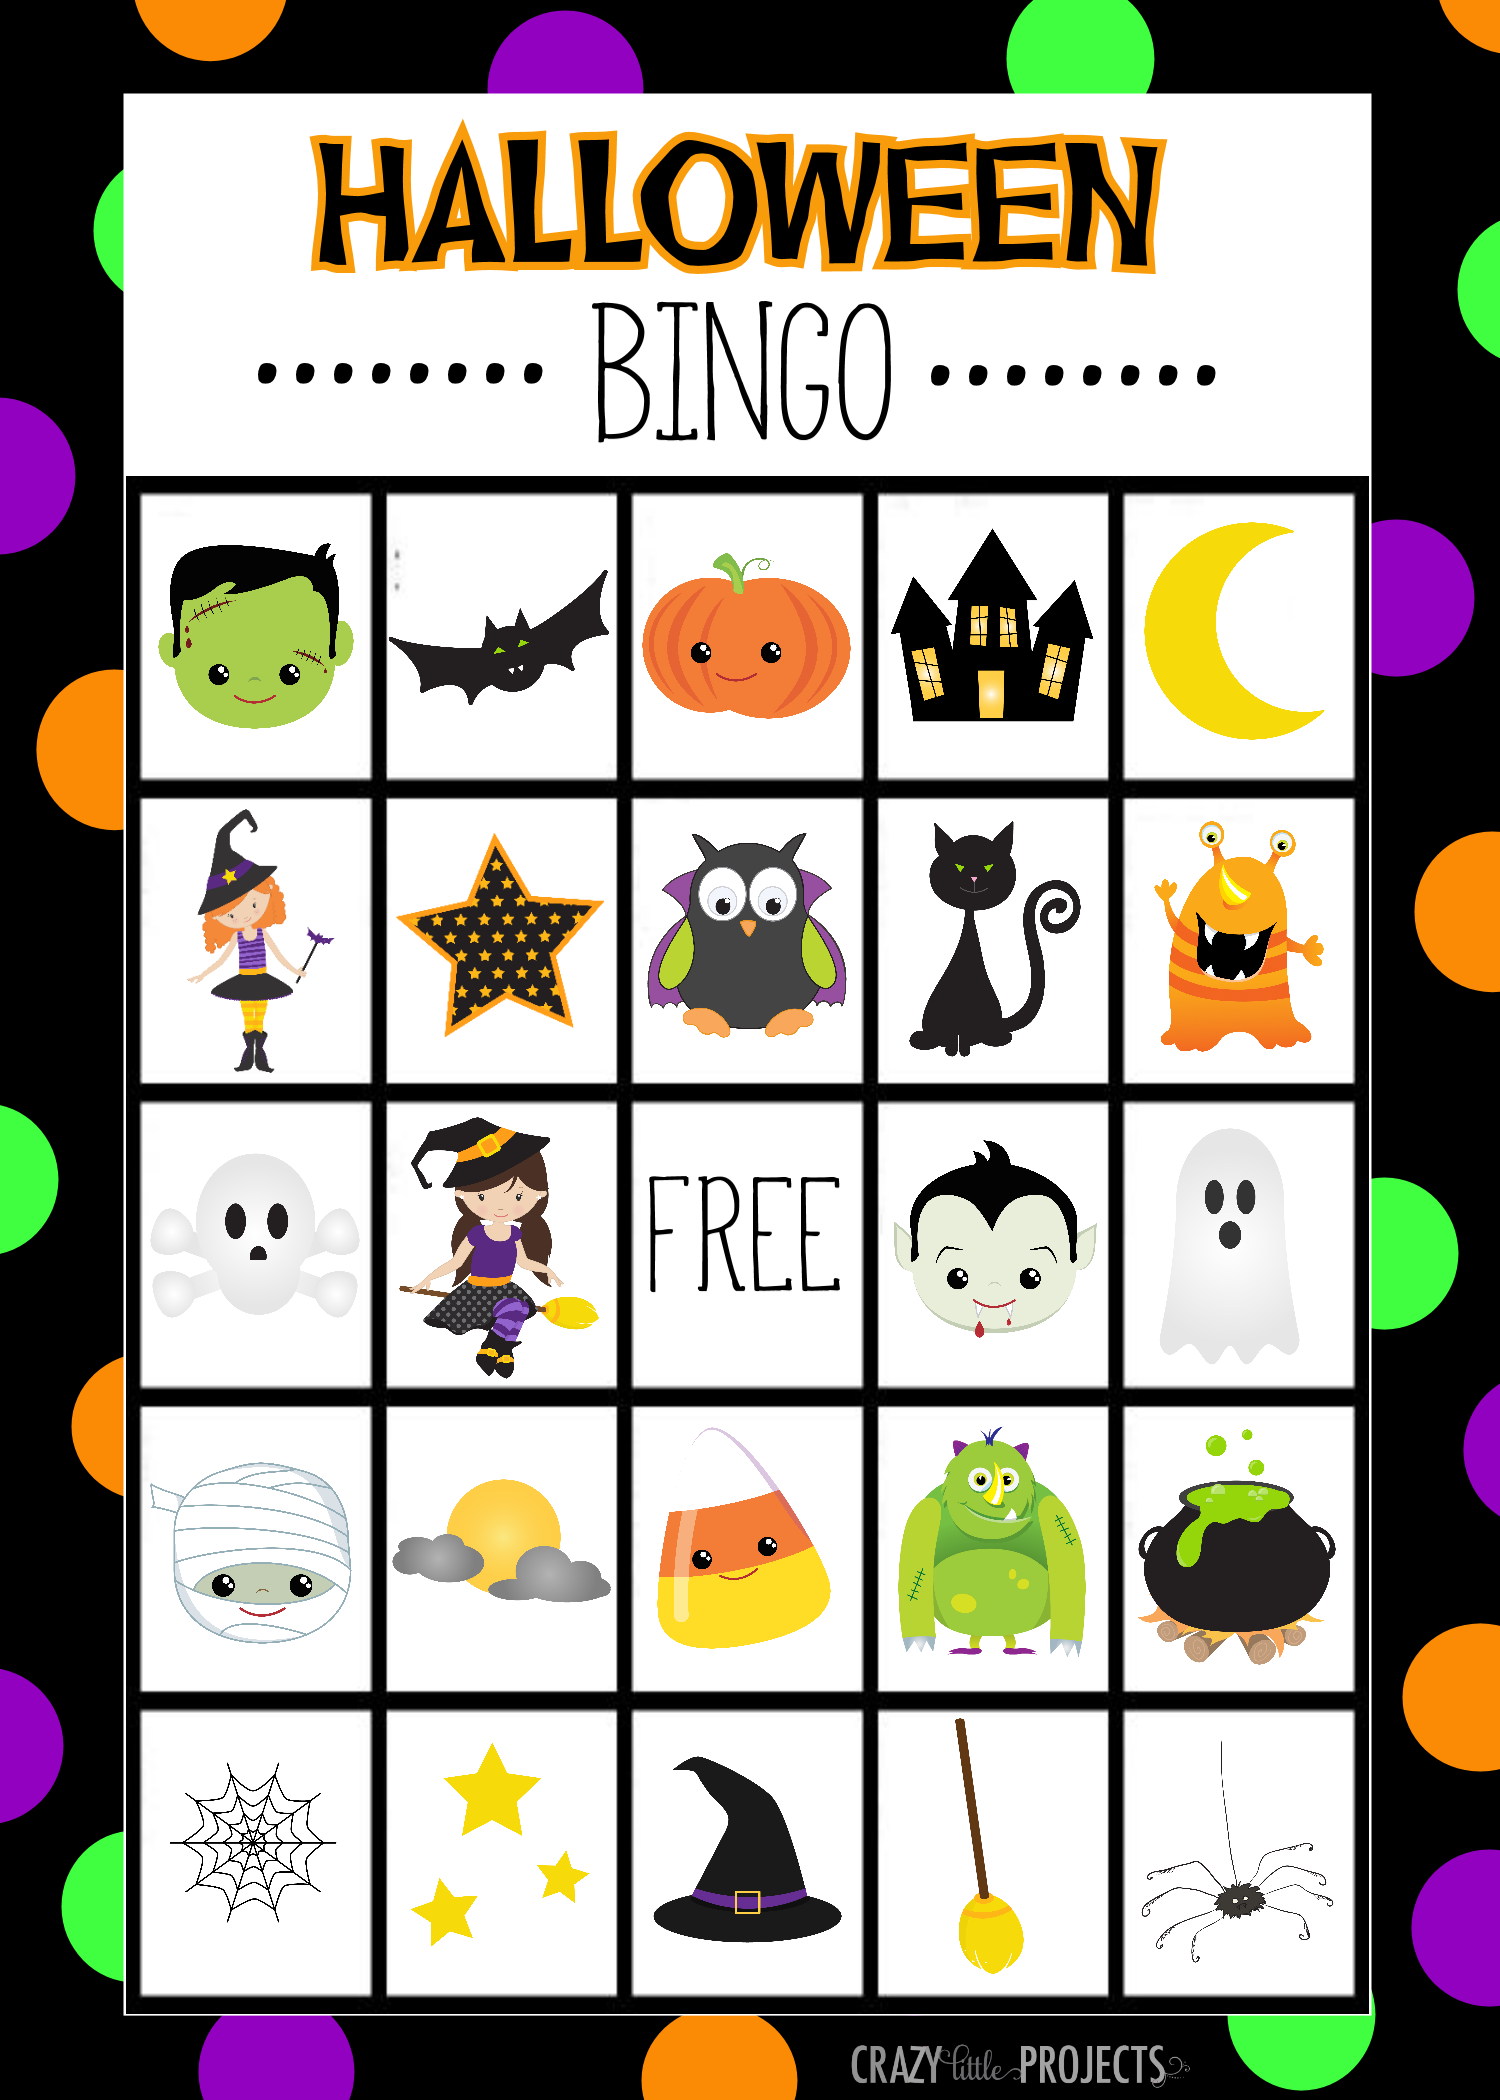 photograph regarding Halloween Printable Games named Cost-free Printable Halloween Bingo Playing cards by way of Nuts Small